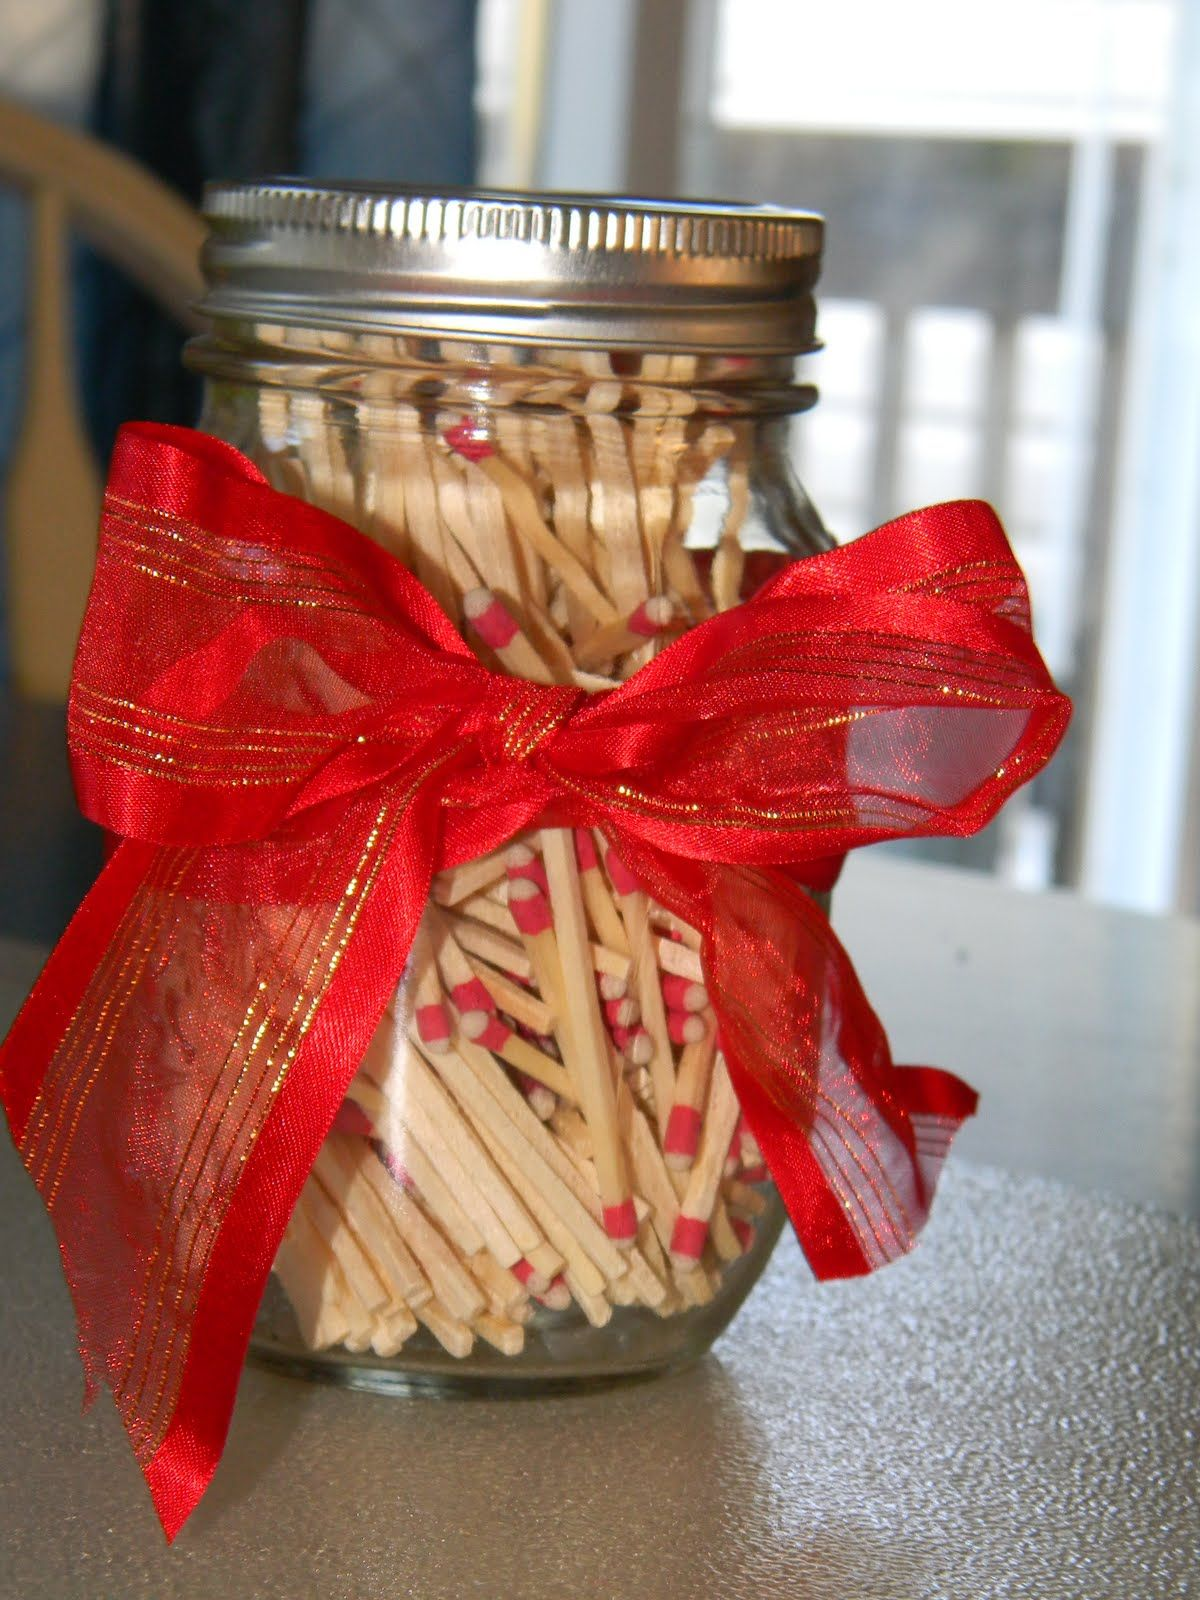 Handmade Pinterest Homemade Gifts So I saw this idea on